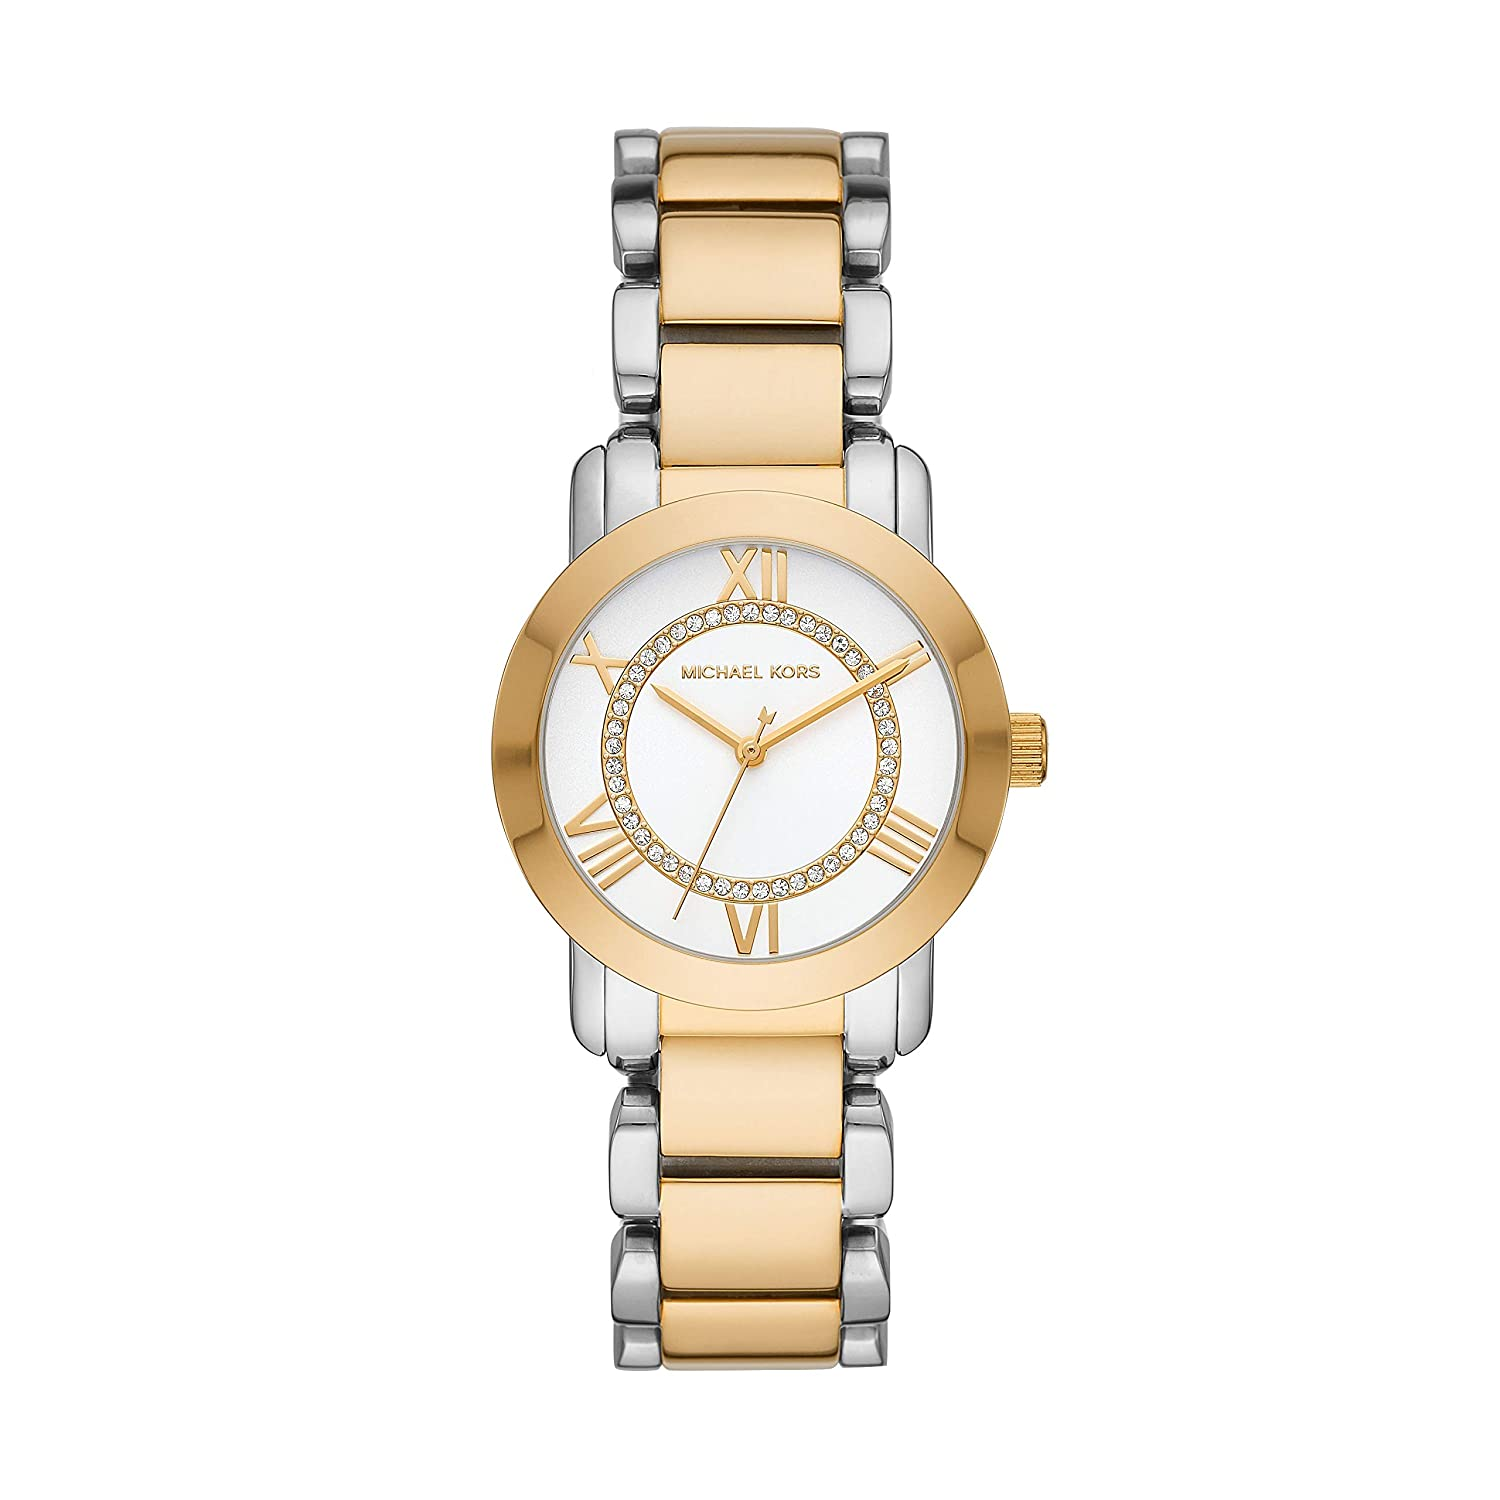 a40cc7a3d4f3 Amazon.com  Michael Kors Women s Janey Two Tone Stainless Steel Watch  MK3531  Watches